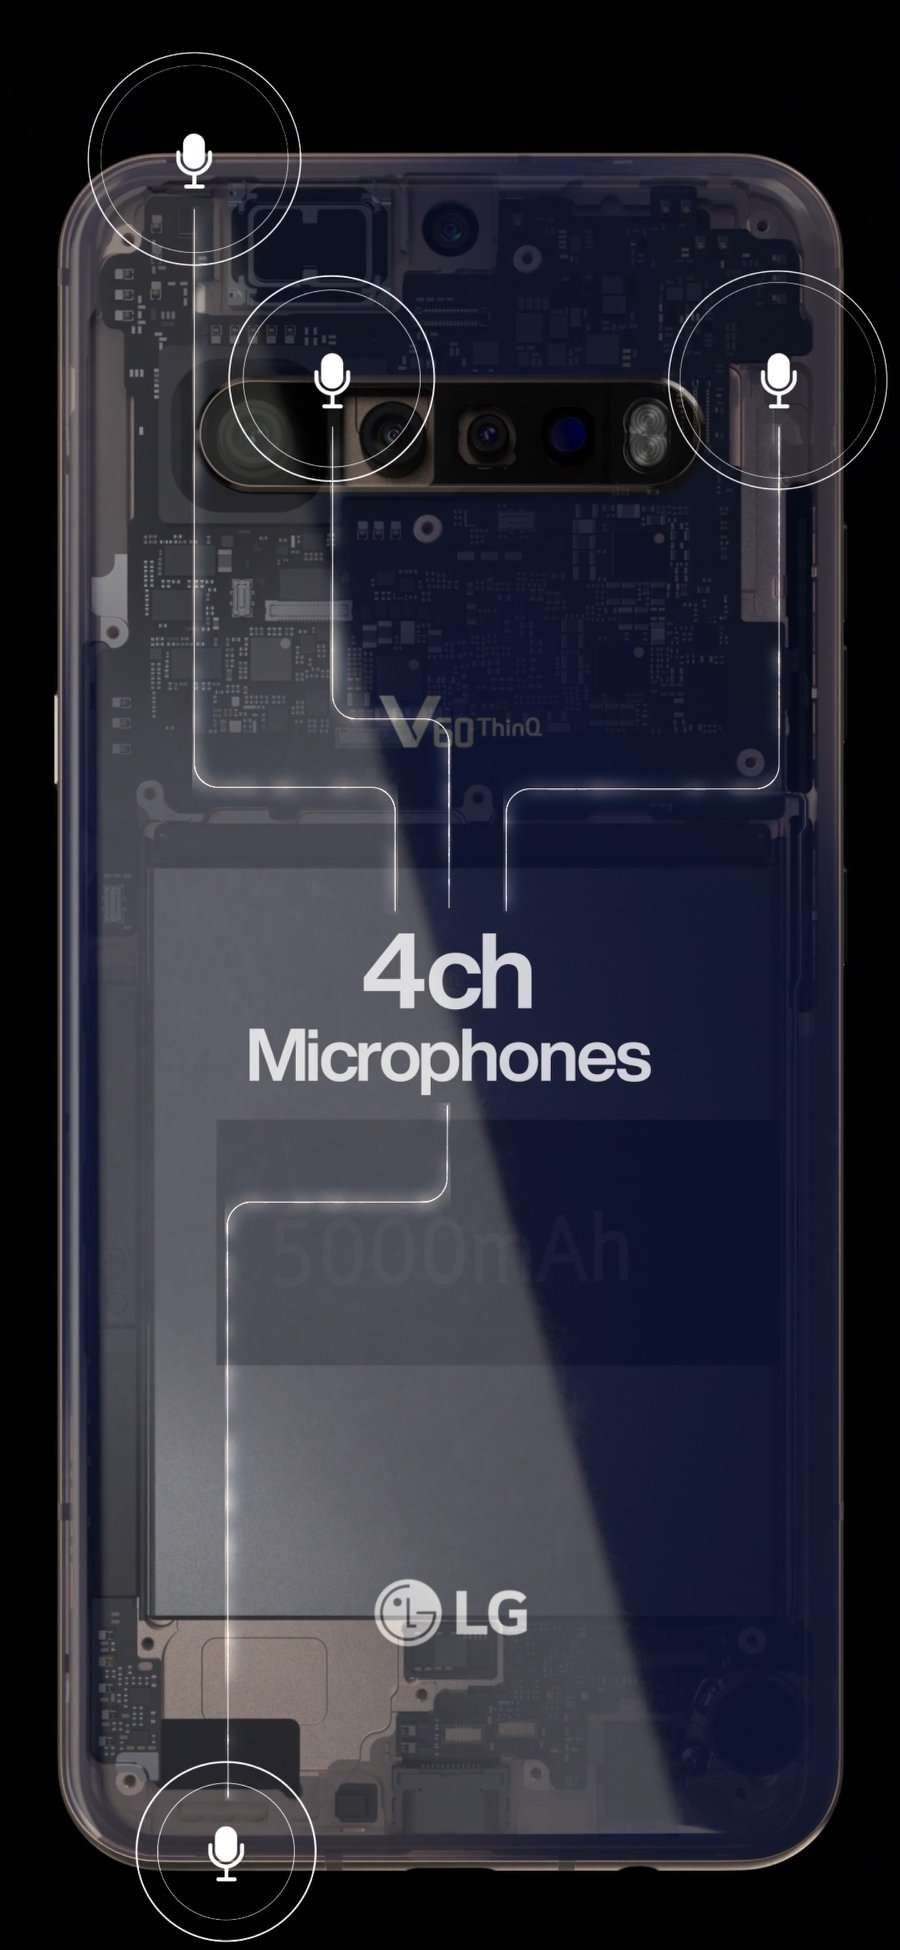 LG V60 ThinQ Teaser Leaked 4 Cameras 5000mAh Battery and Headphone Jack